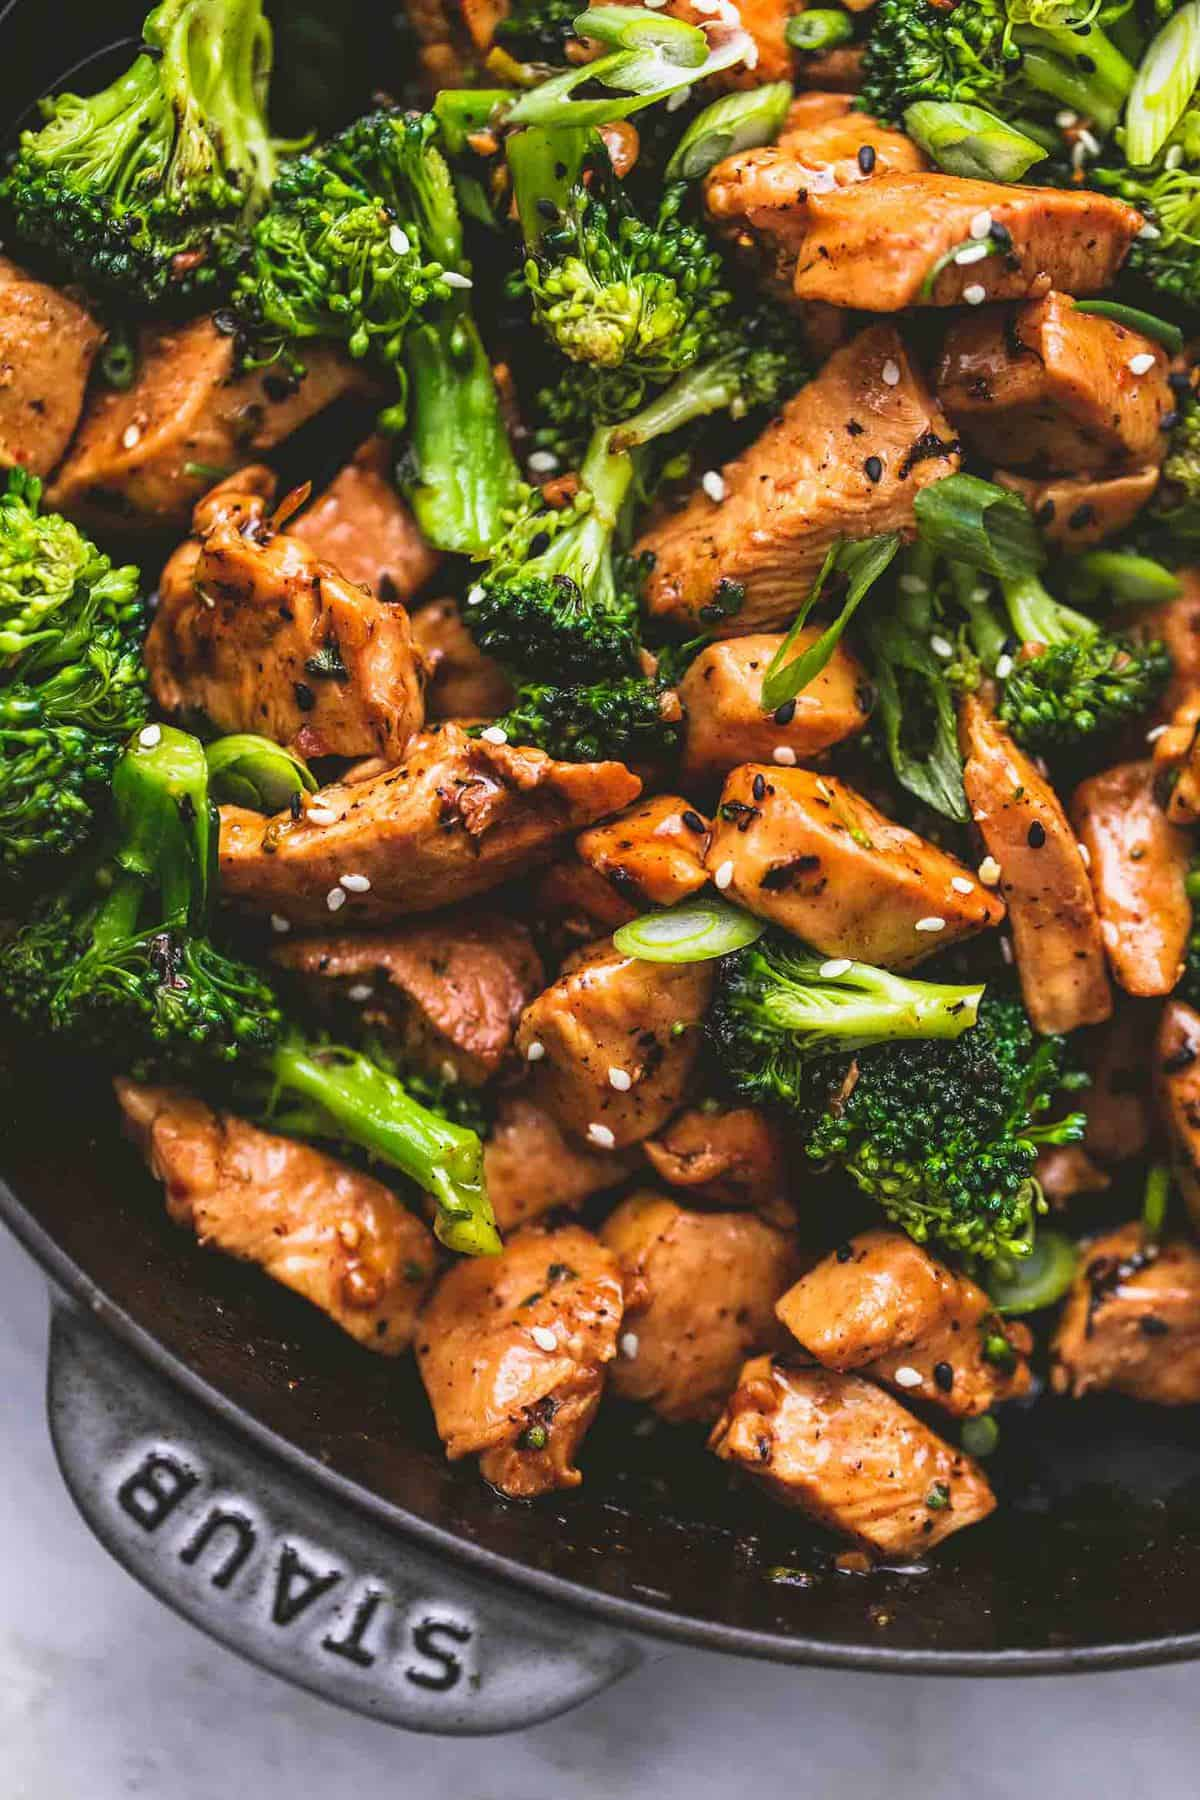 Easy Chicken and Broccoli Stir Fry recipe | lecremedealcrumb.com